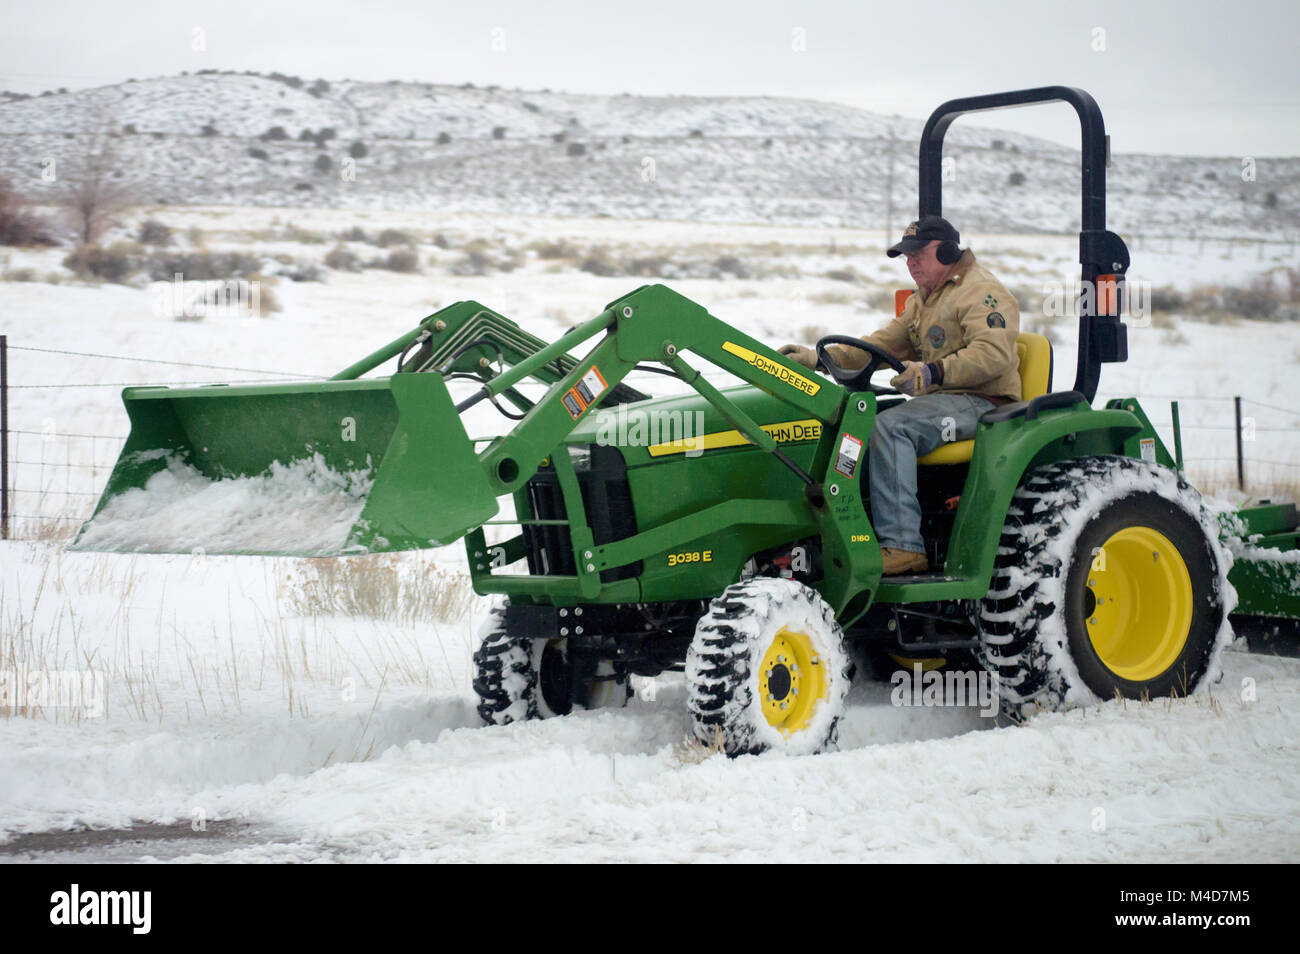 John Deere Snow Plow A Farmer Plowing Snow With A John Deere Tractor Stock Photo